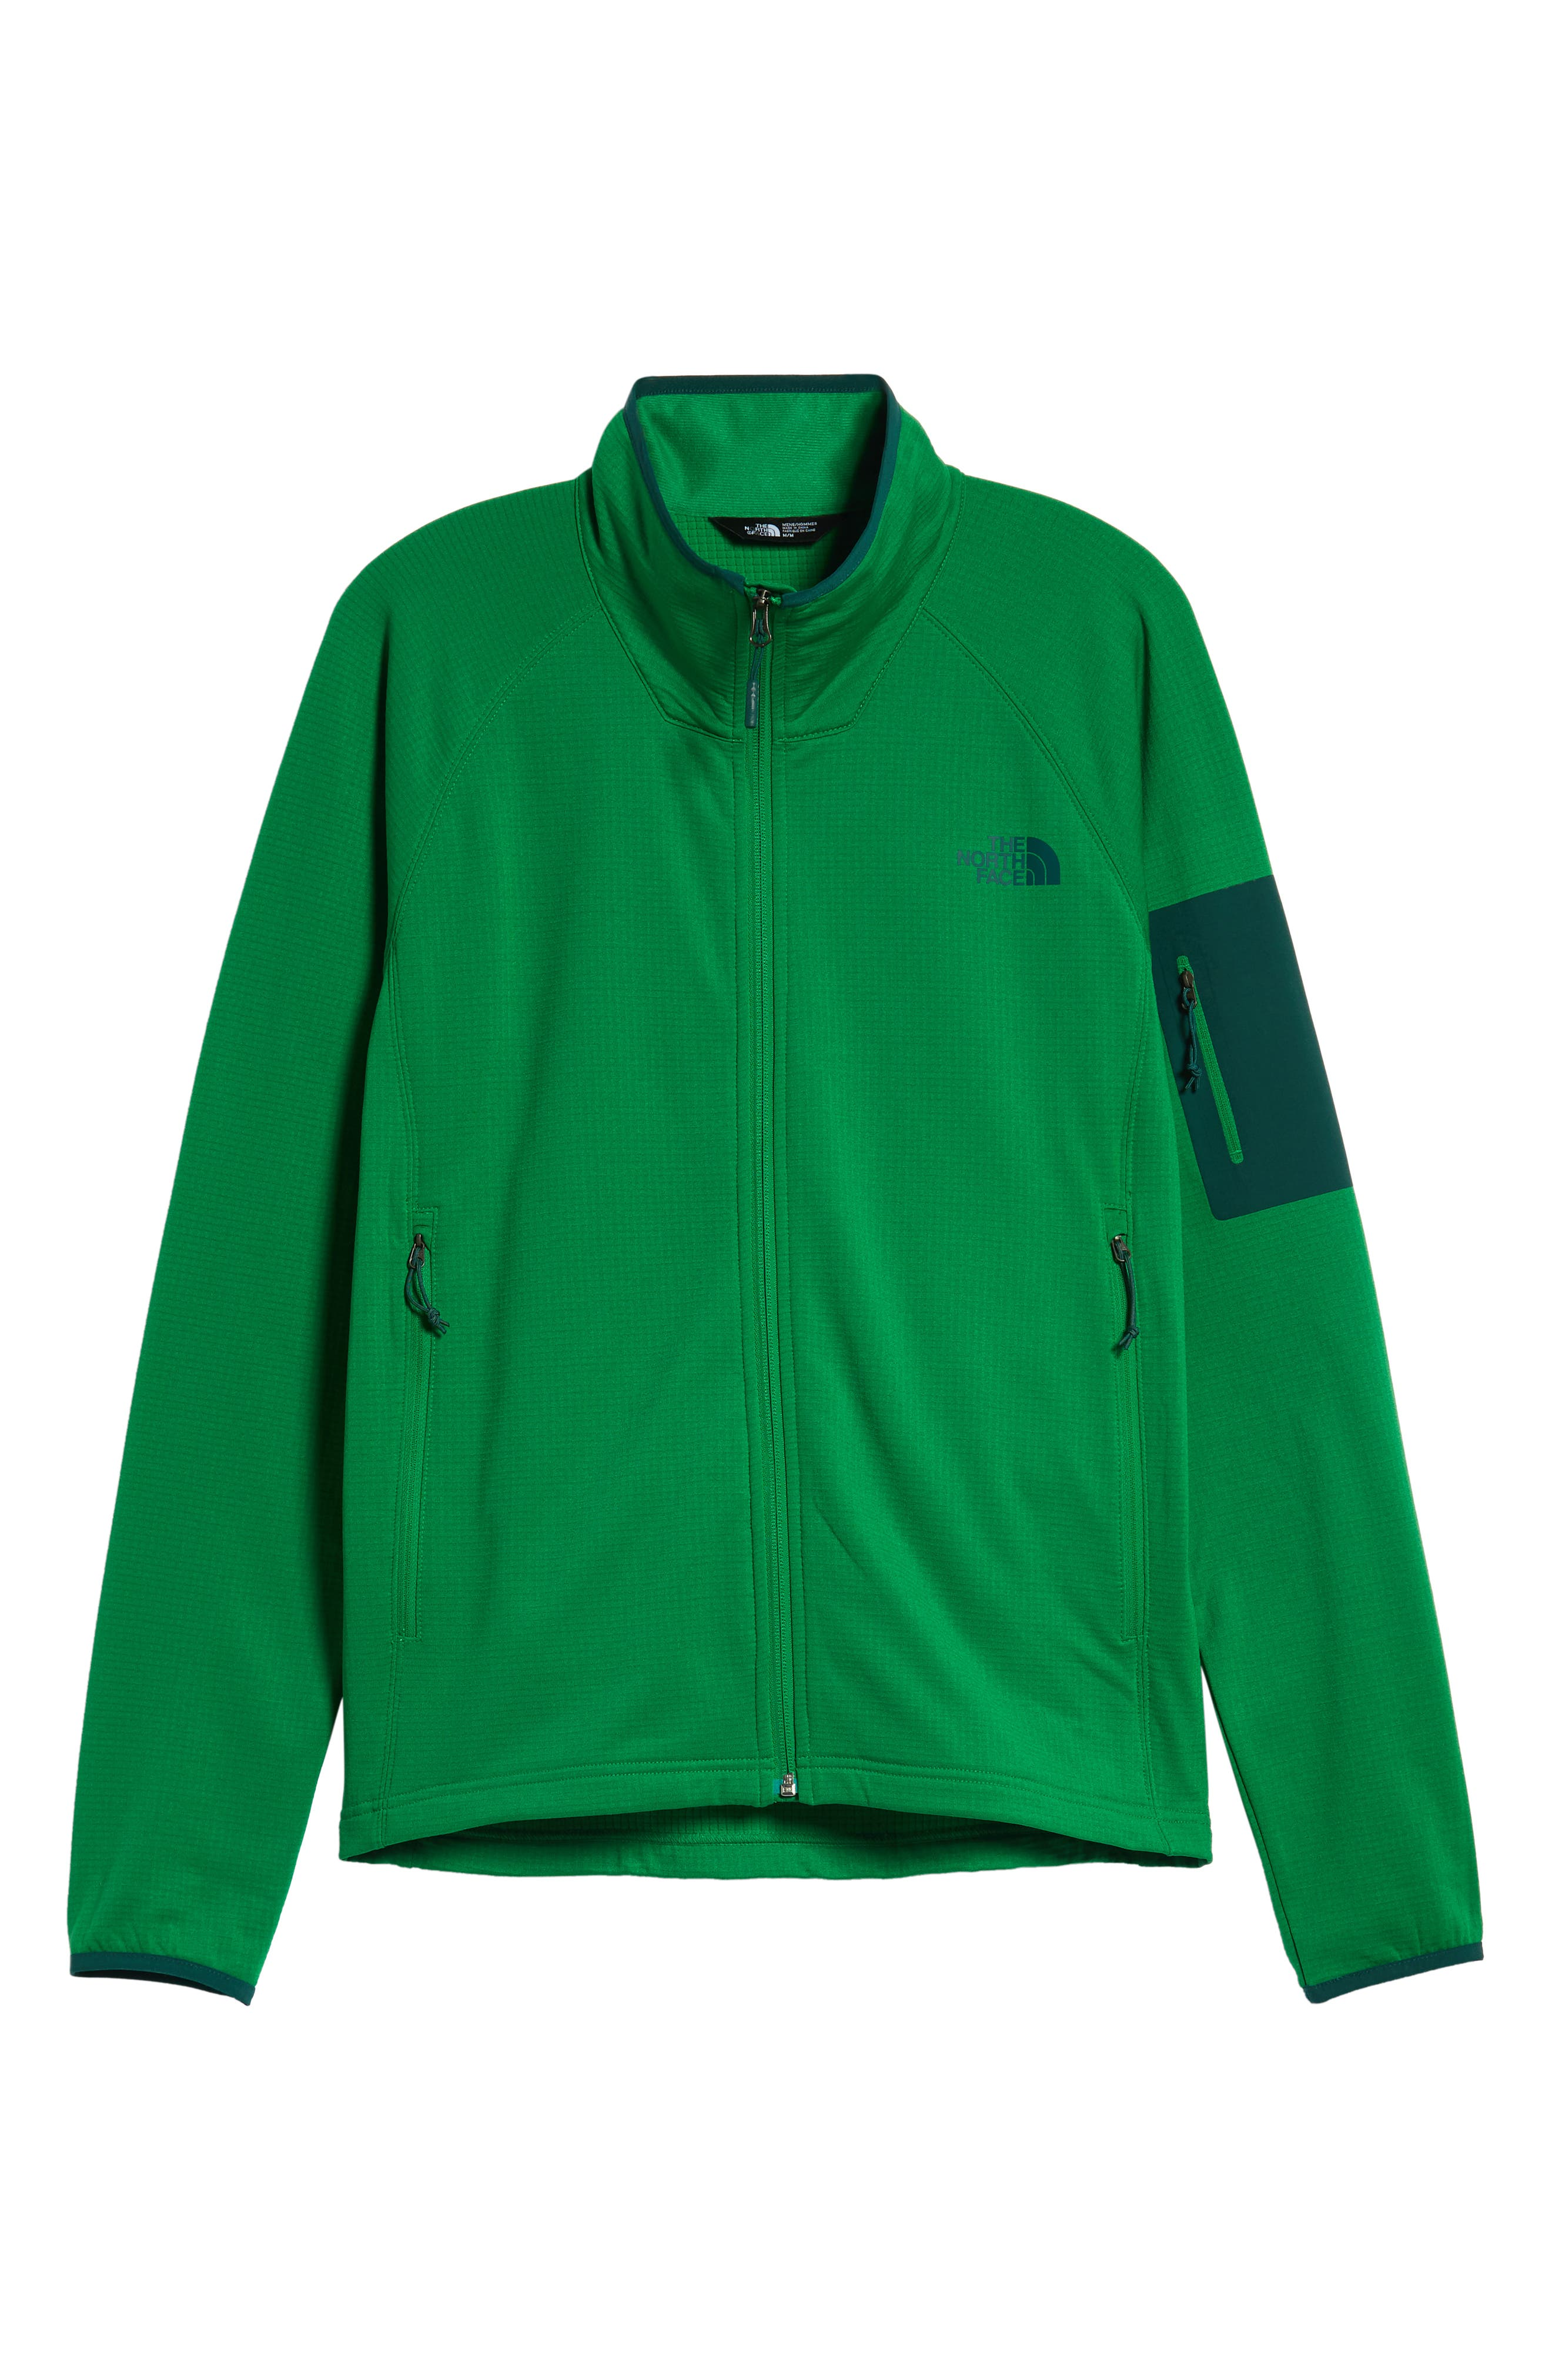 THE NORTH FACE,                             Borod Jacket,                             Alternate thumbnail 6, color,                             310